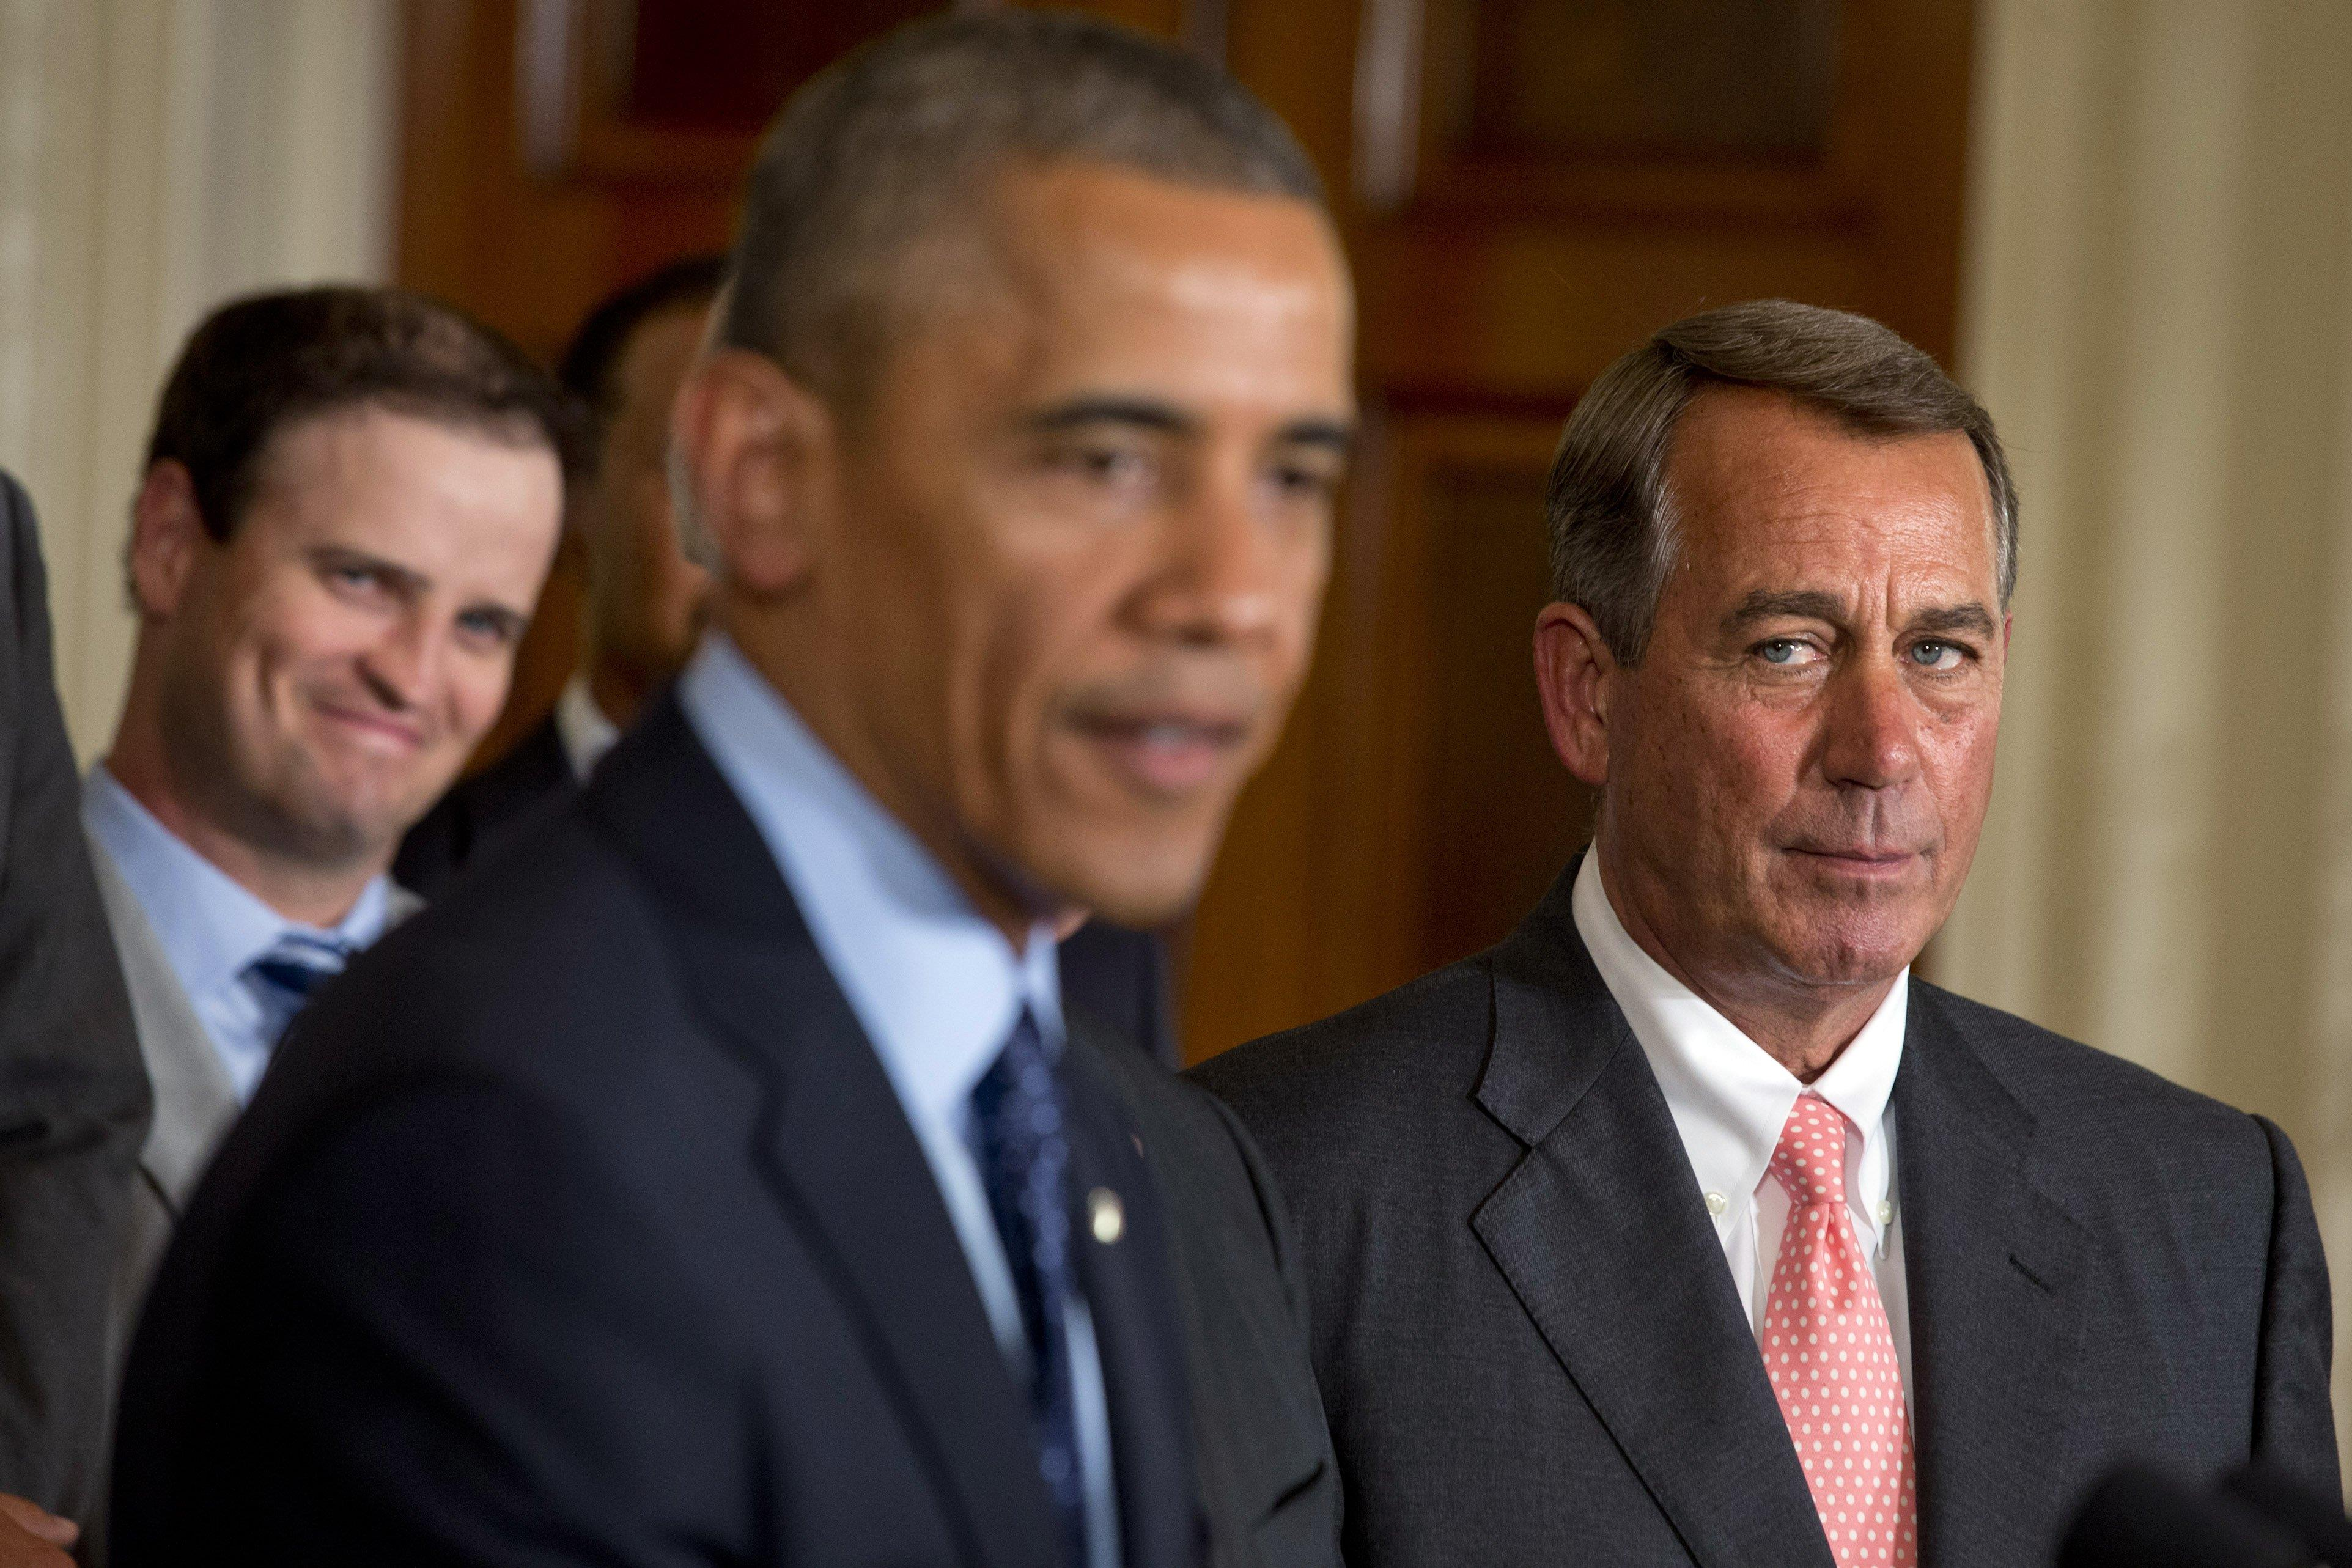 Image: Barack Obama, John Boehner, Zach Johnson